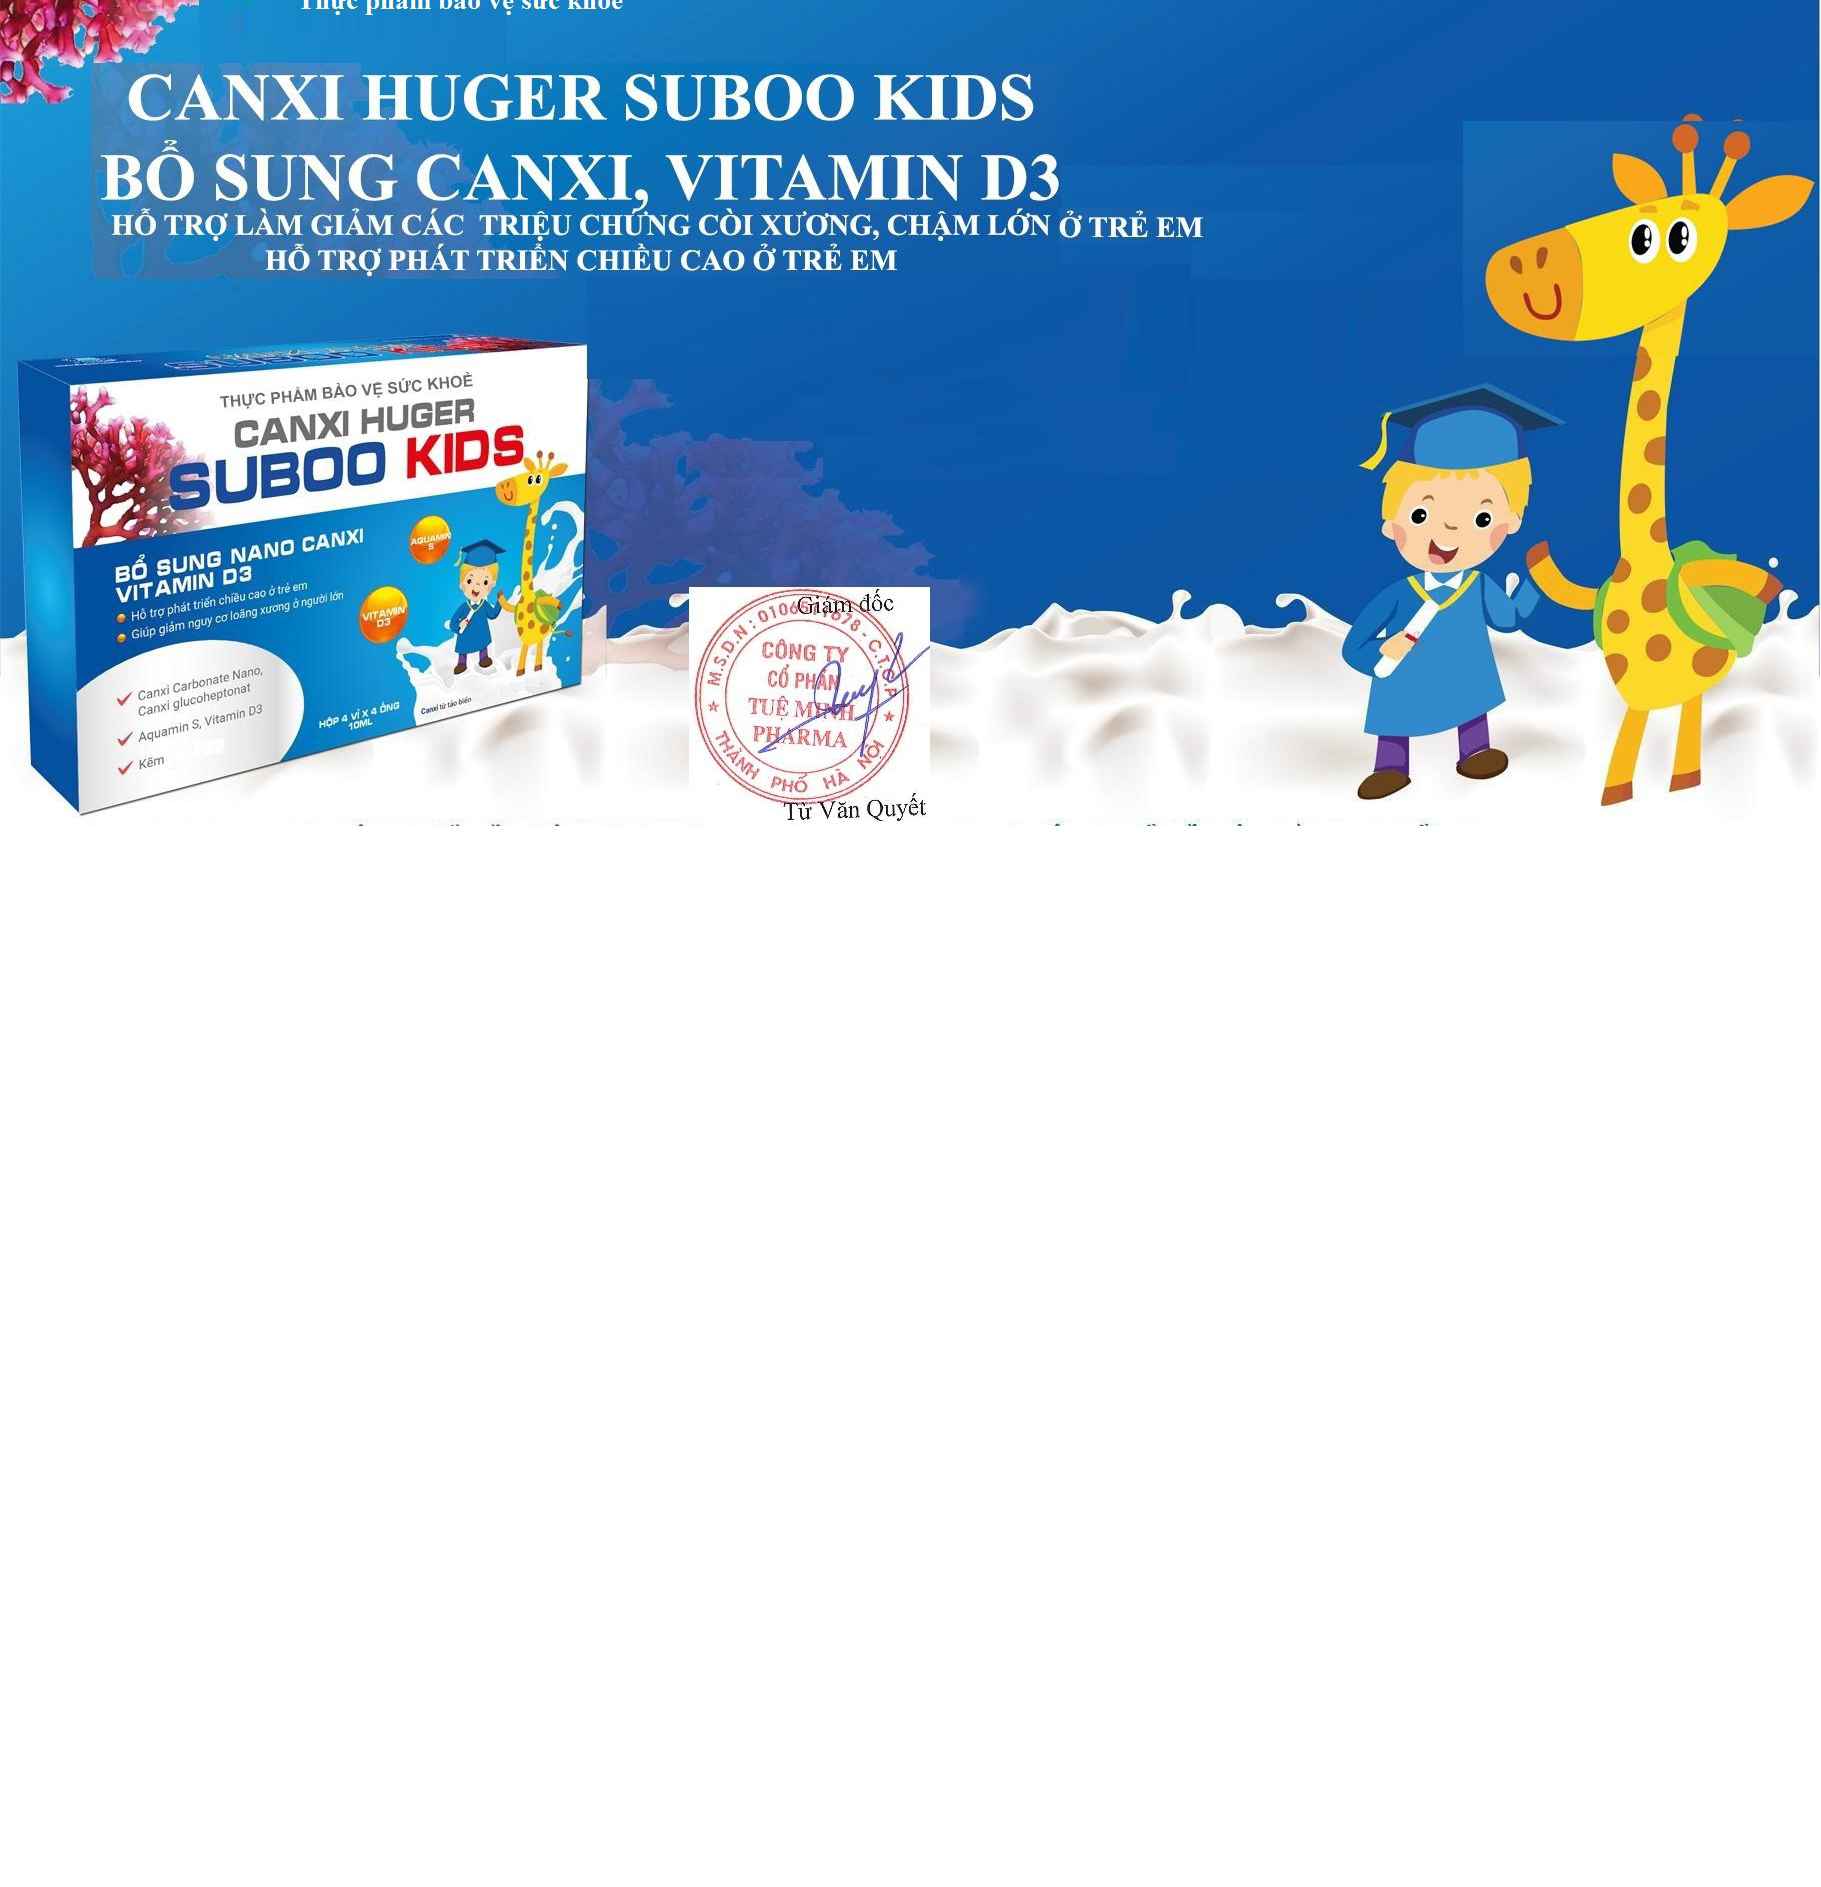 CANXI HUGER SUBOO KIDS